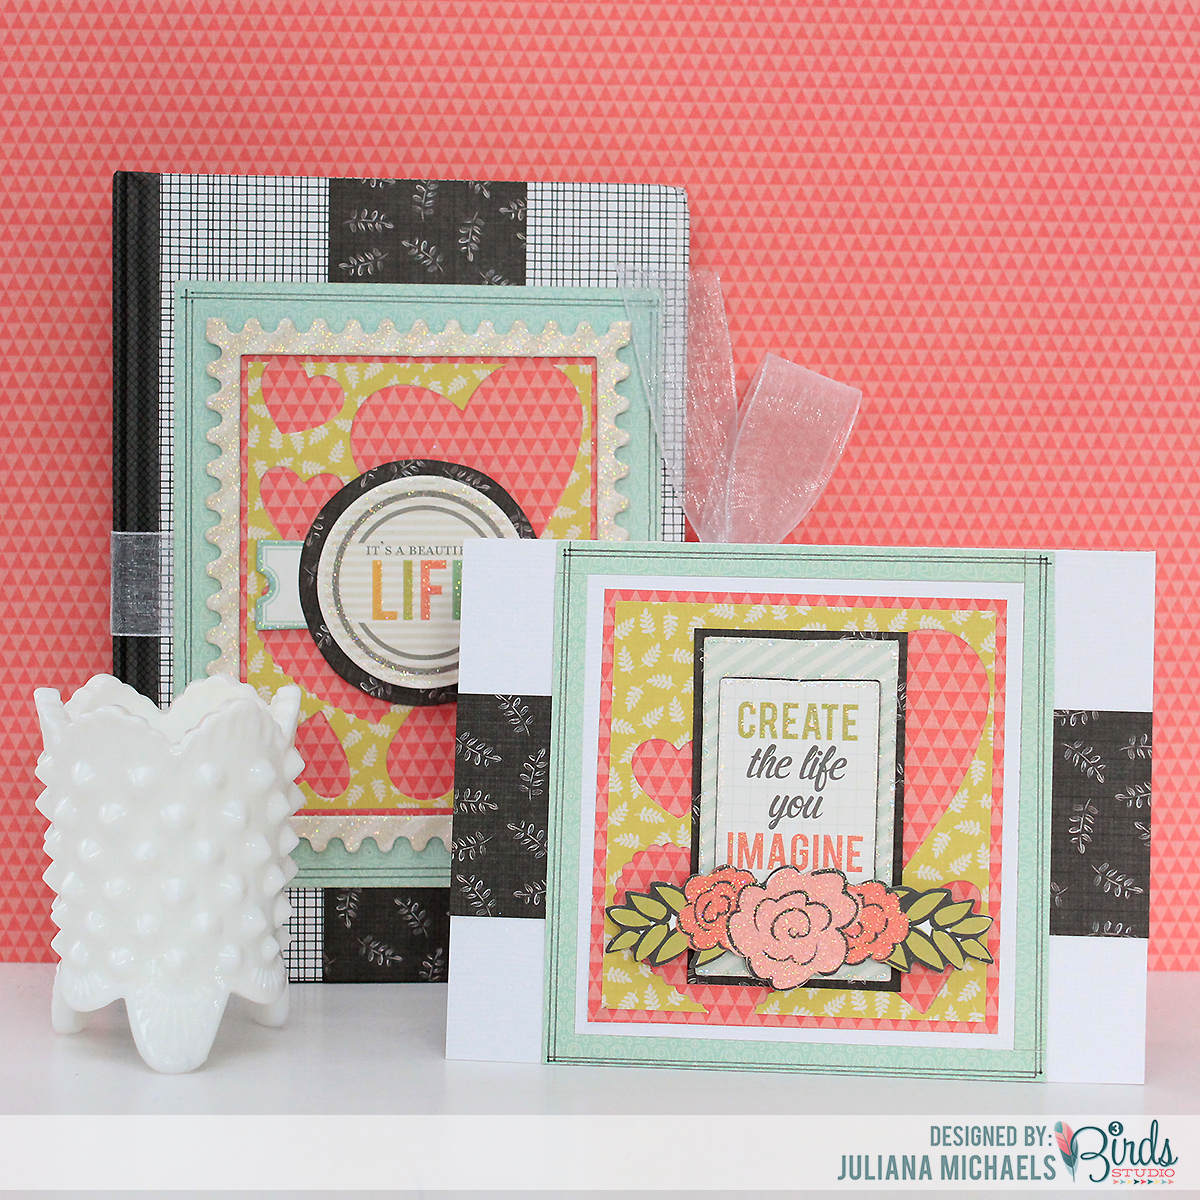 It's A Beautiful Life Notebook and Create The Life Card using paper scraps 3 Birds Studio Graceful Season Collection